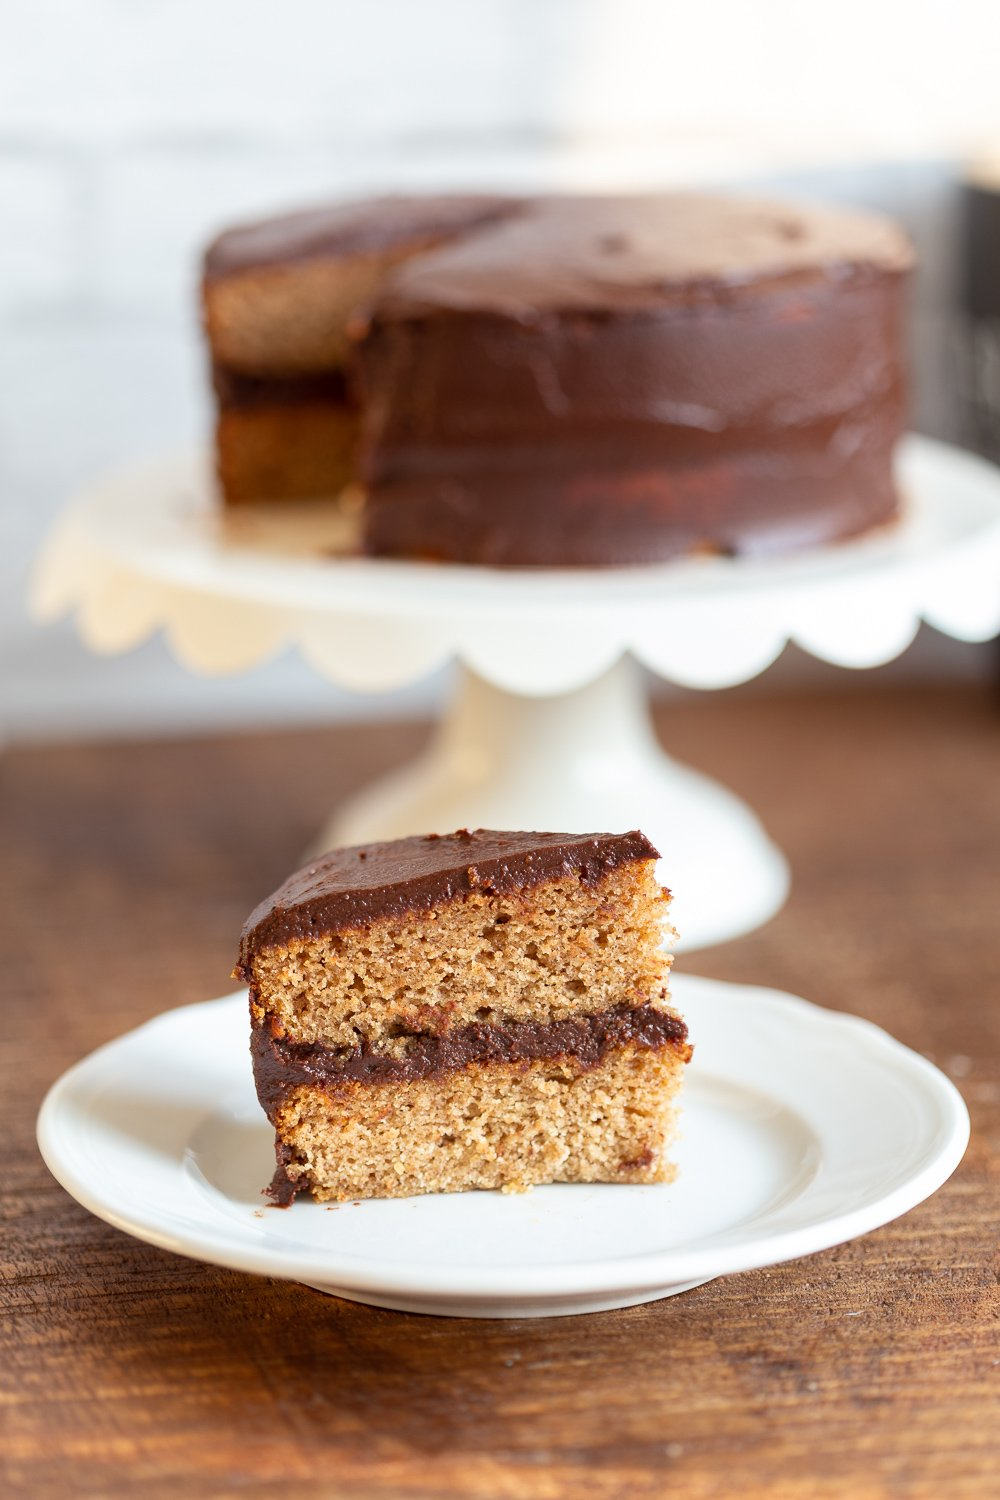 The Best Vegan Gluten free Vanilla Cake with Chocolate Frosting. Soft and delicious Vanilla cakes sweetened with dates. #Vegan #Glutenfree #vanillacake #gumfree #eggless #Recipe #veganRicha Can be #refinedsugarfree.